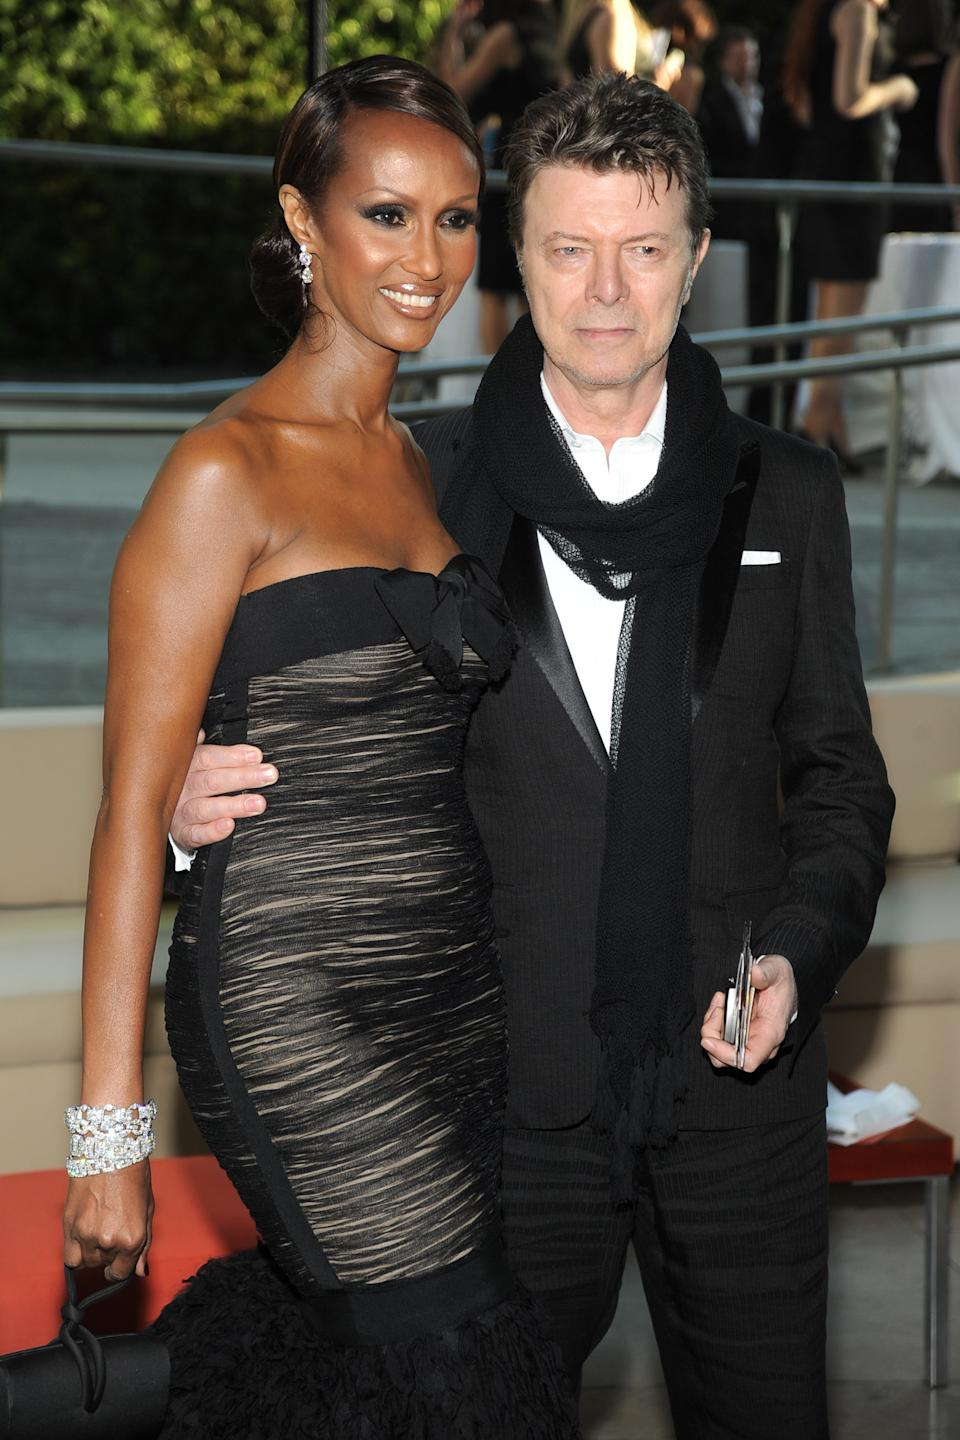 Iman and David Bowie attend 2010 CFDA Awards- Arrivals at Alice Tully Hall on June 7, 2010 in New York City. (Photo by BILLY FARRELL/Patrick McMullan via Getty Images)